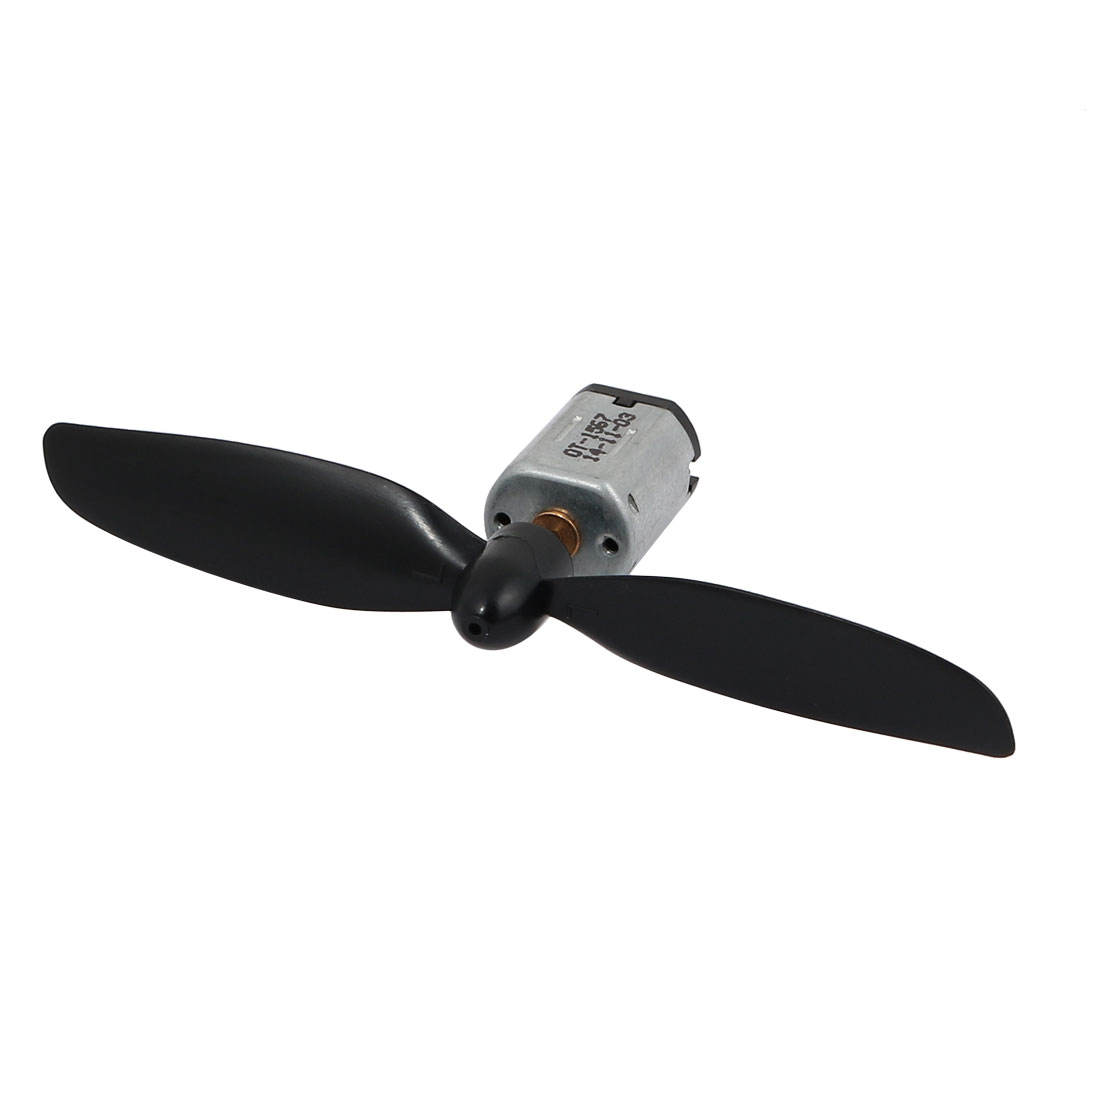 DC 3.7V 25000RPM N20 High Speed Strong Magnetic Motor w Helicopter CCW Propeller